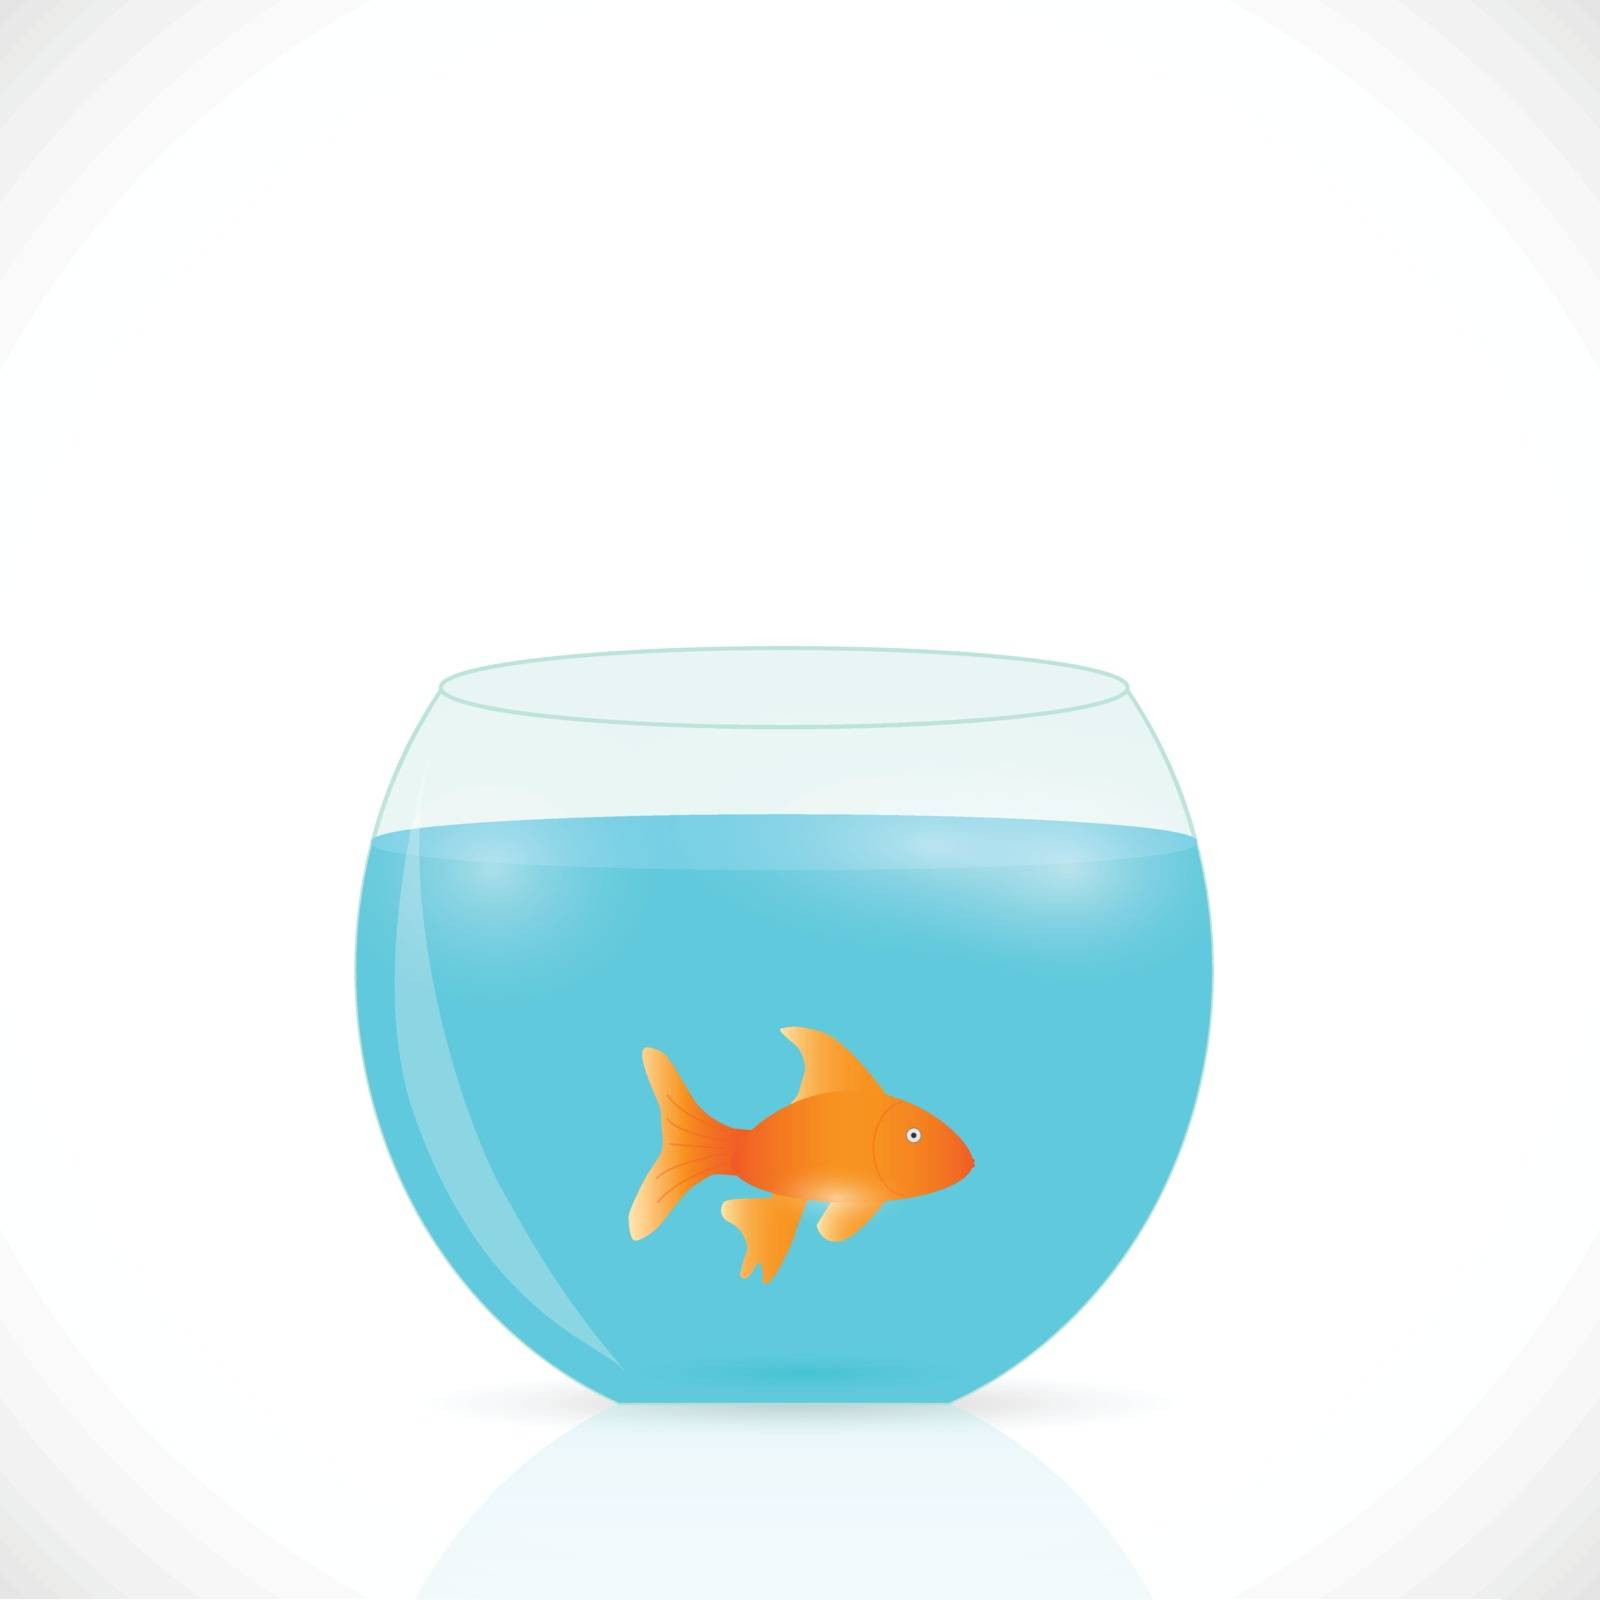 Illustration of a goldfish in a bowl isolated on a white background.